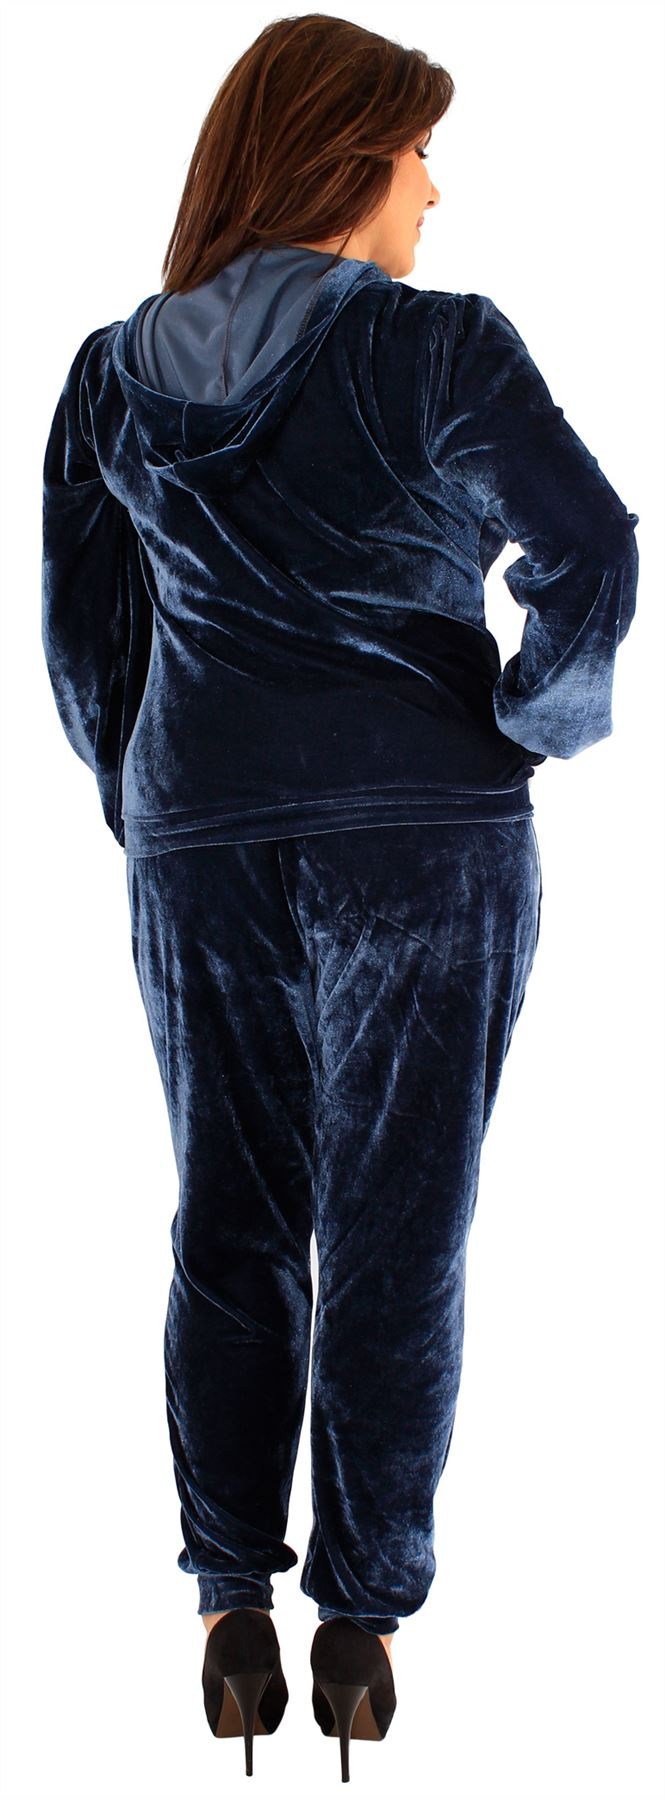 Womens Plus Size Hooded Velour Full Track Suits Track Top Joking Bottoms 16-26